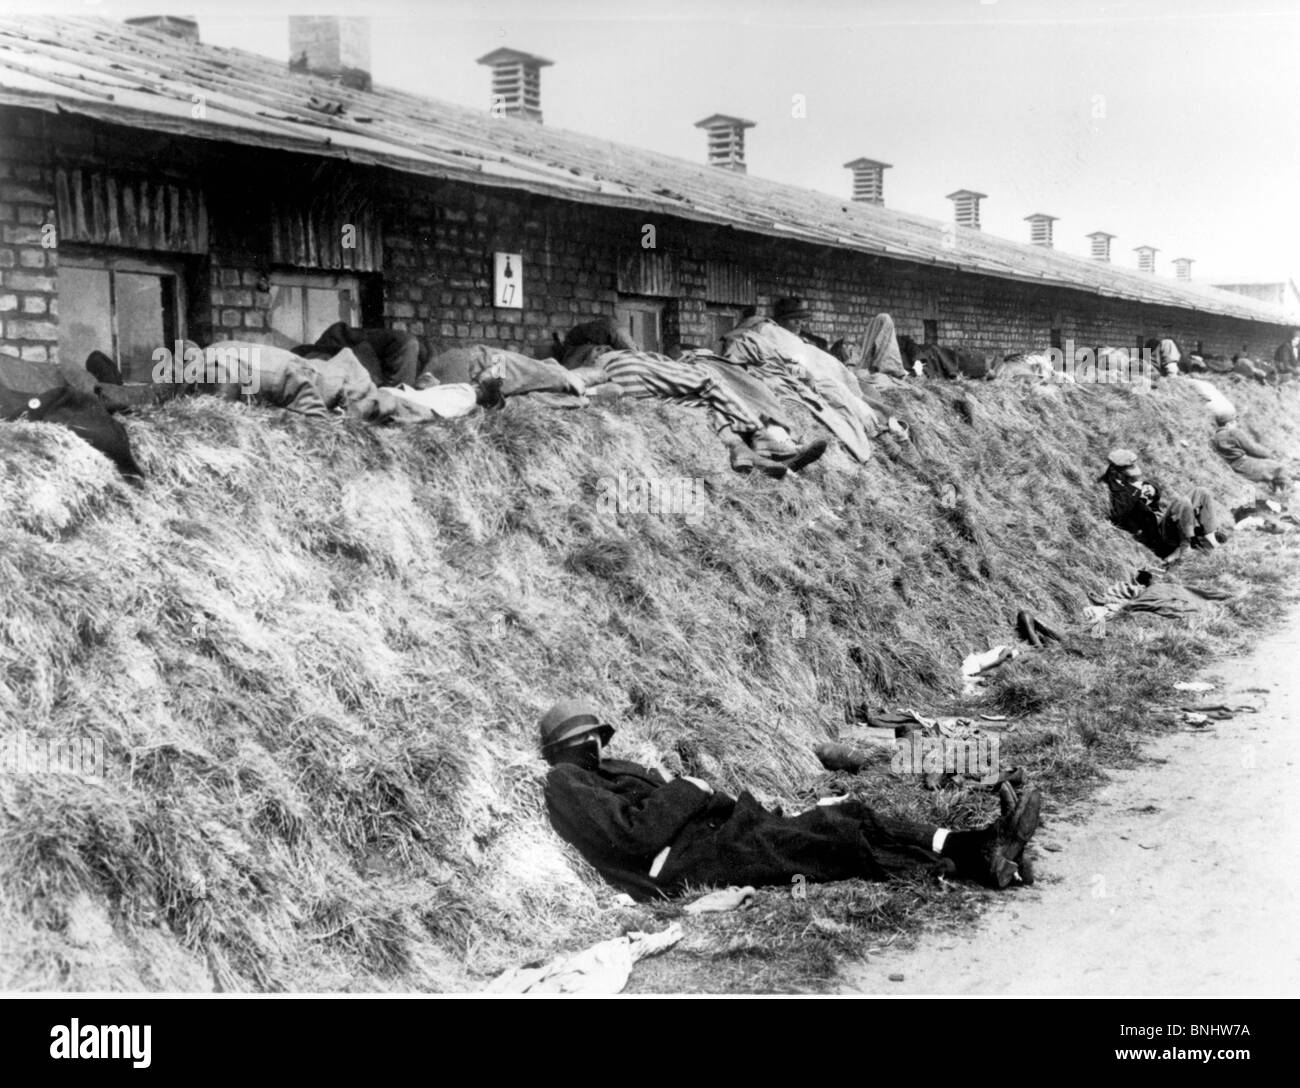 a history of the nazi concentration camps Concentration camps are synonymous with a center of torture, an essence of evil and horror here is a glimpse into some of the nightmarish conditions that existed in concentration camps.